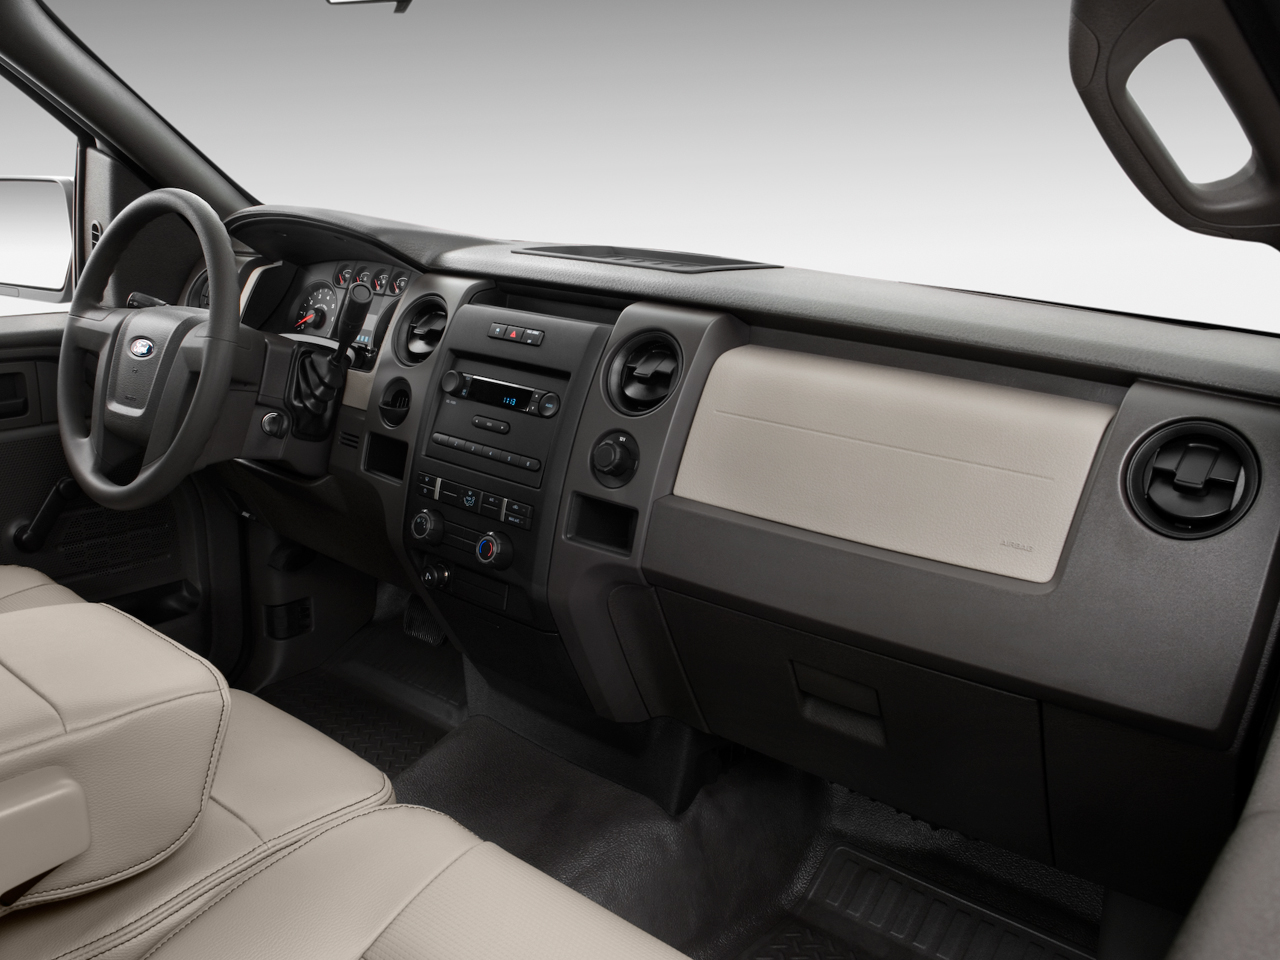 2016 ford mustang interior u s news amp world report - 64 75